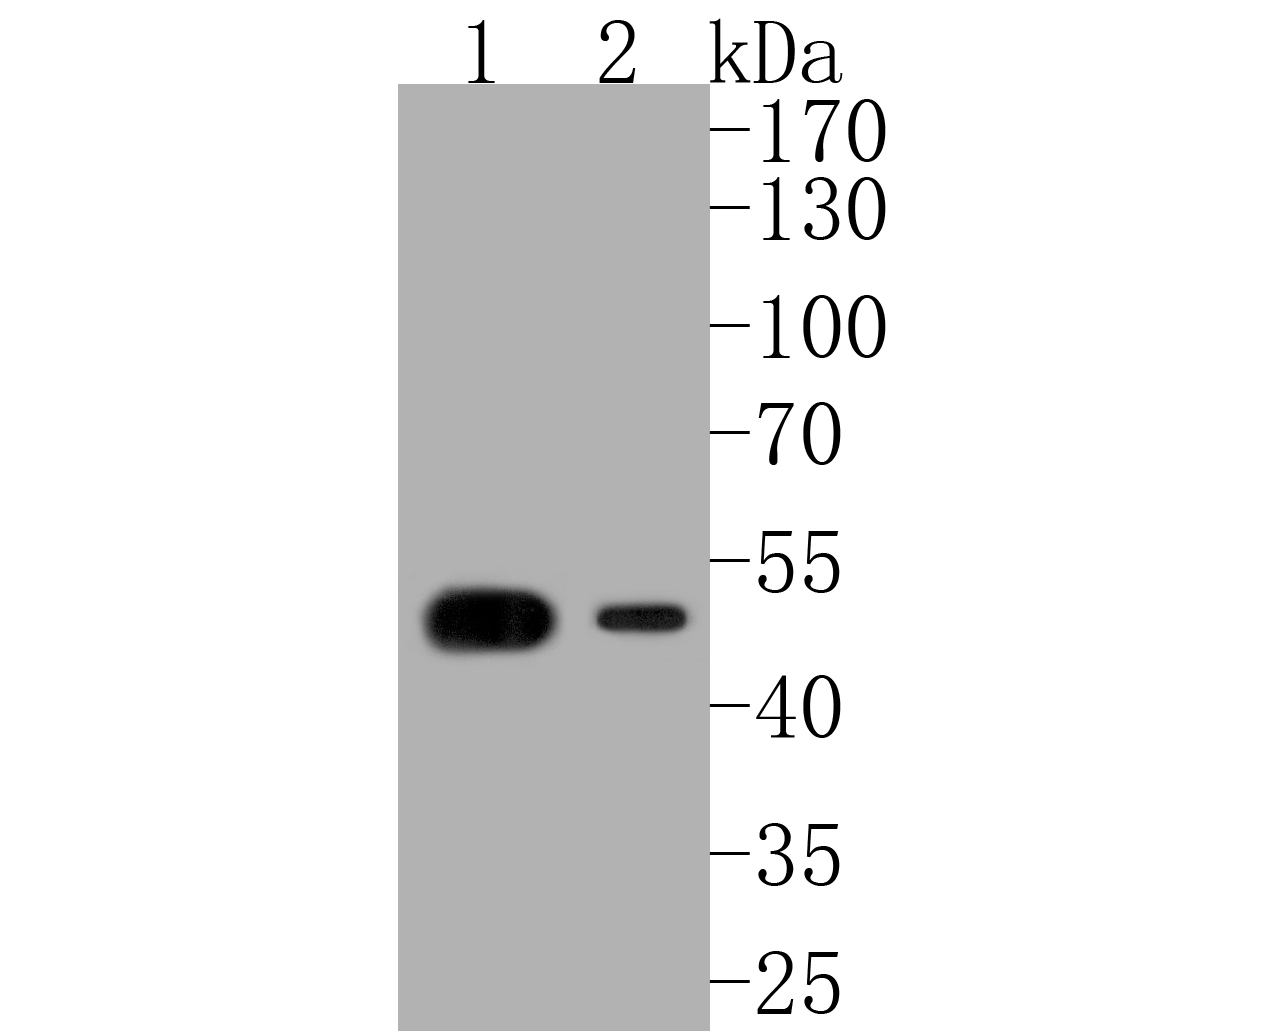 Western blot analysis of Cytokeratin 14 on different lysates. Proteins were transferred to a PVDF membrane and blocked with 5% BSA in PBS for 1 hour at room temperature. The primary antibody (ET1610-42, 1/500) was used in 5% BSA at room temperature for 2 hours. Goat Anti-Rabbit IgG - HRP Secondary Antibody (HA1001) at 1:5,000 dilution was used for 1 hour at room temperature.<br /> Positive control: <br /> Lane 1: human skin tissue lysate<br /> Lane 2: A431 cell lysate